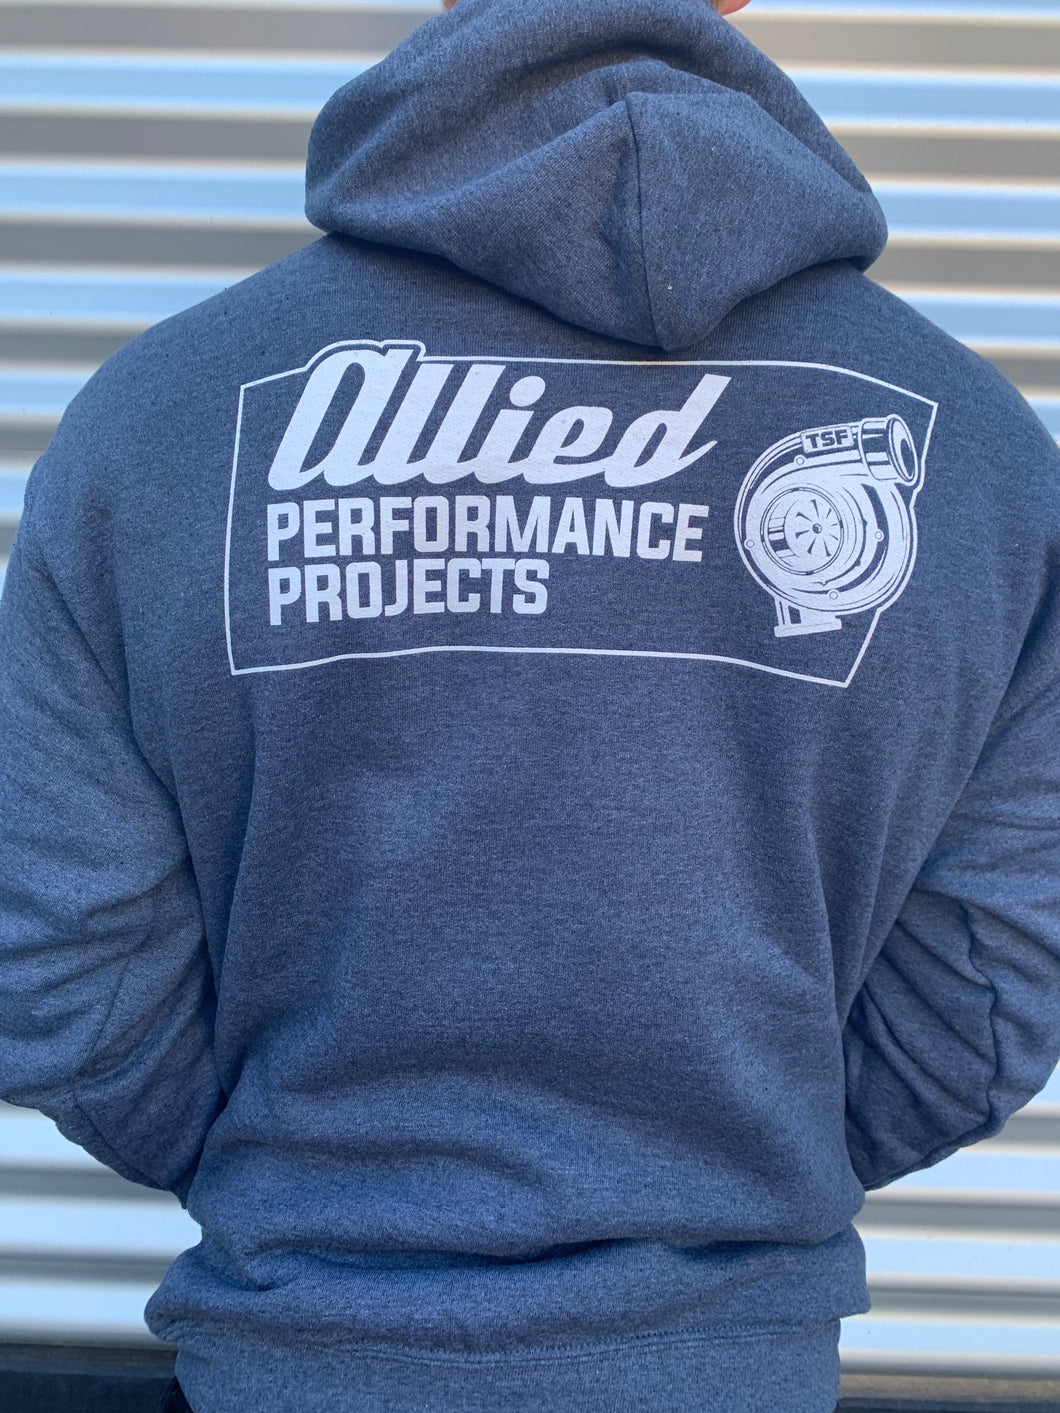 Allied Performance Projects - V2 Hoodie